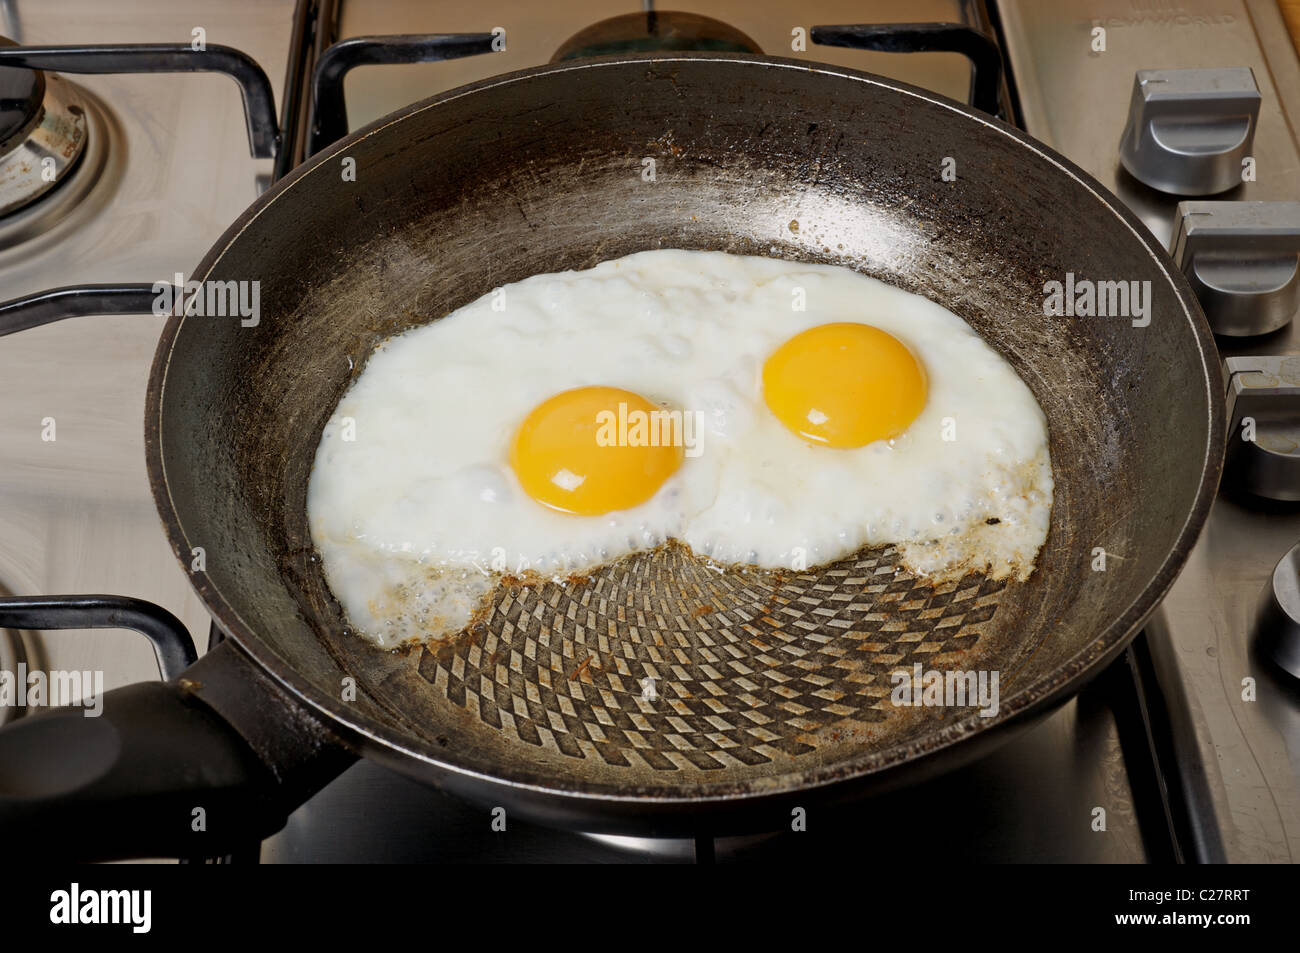 Fried organic egg cooking in frying pan - Stock Image